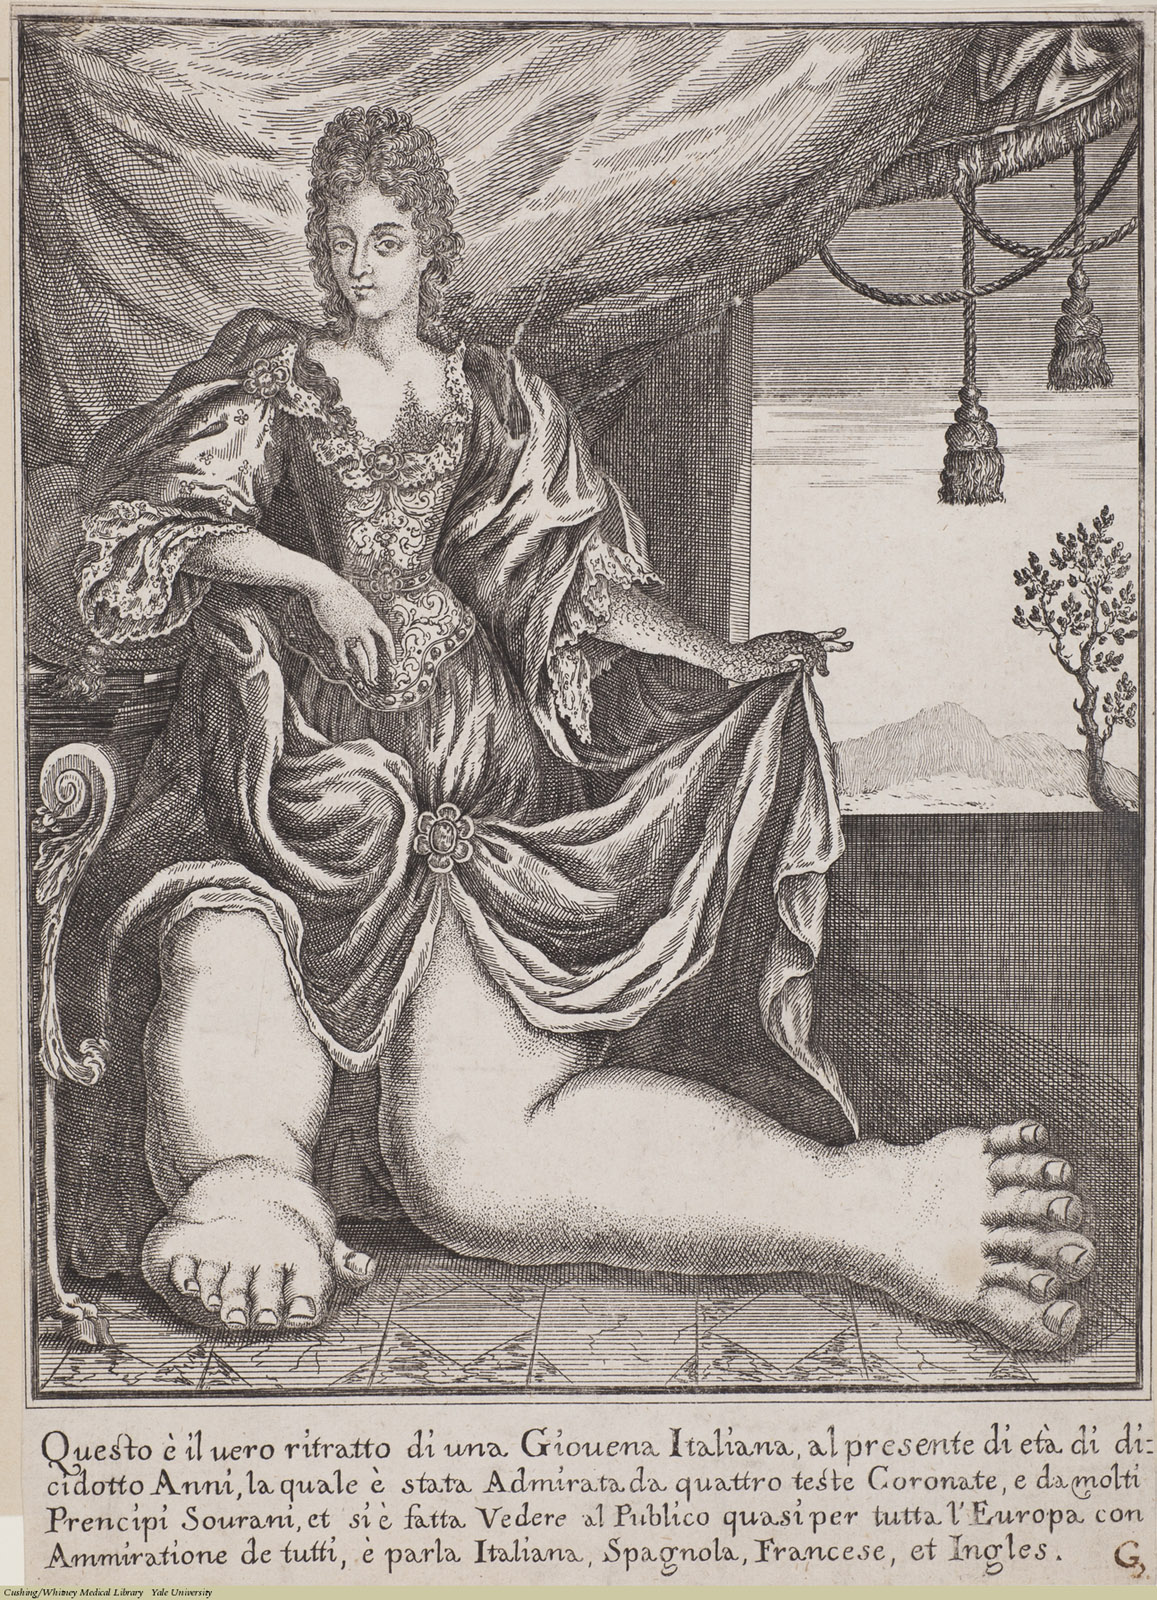 Woman with Elephantiasis, Laid, Anonymous, Italian, 18th Century.